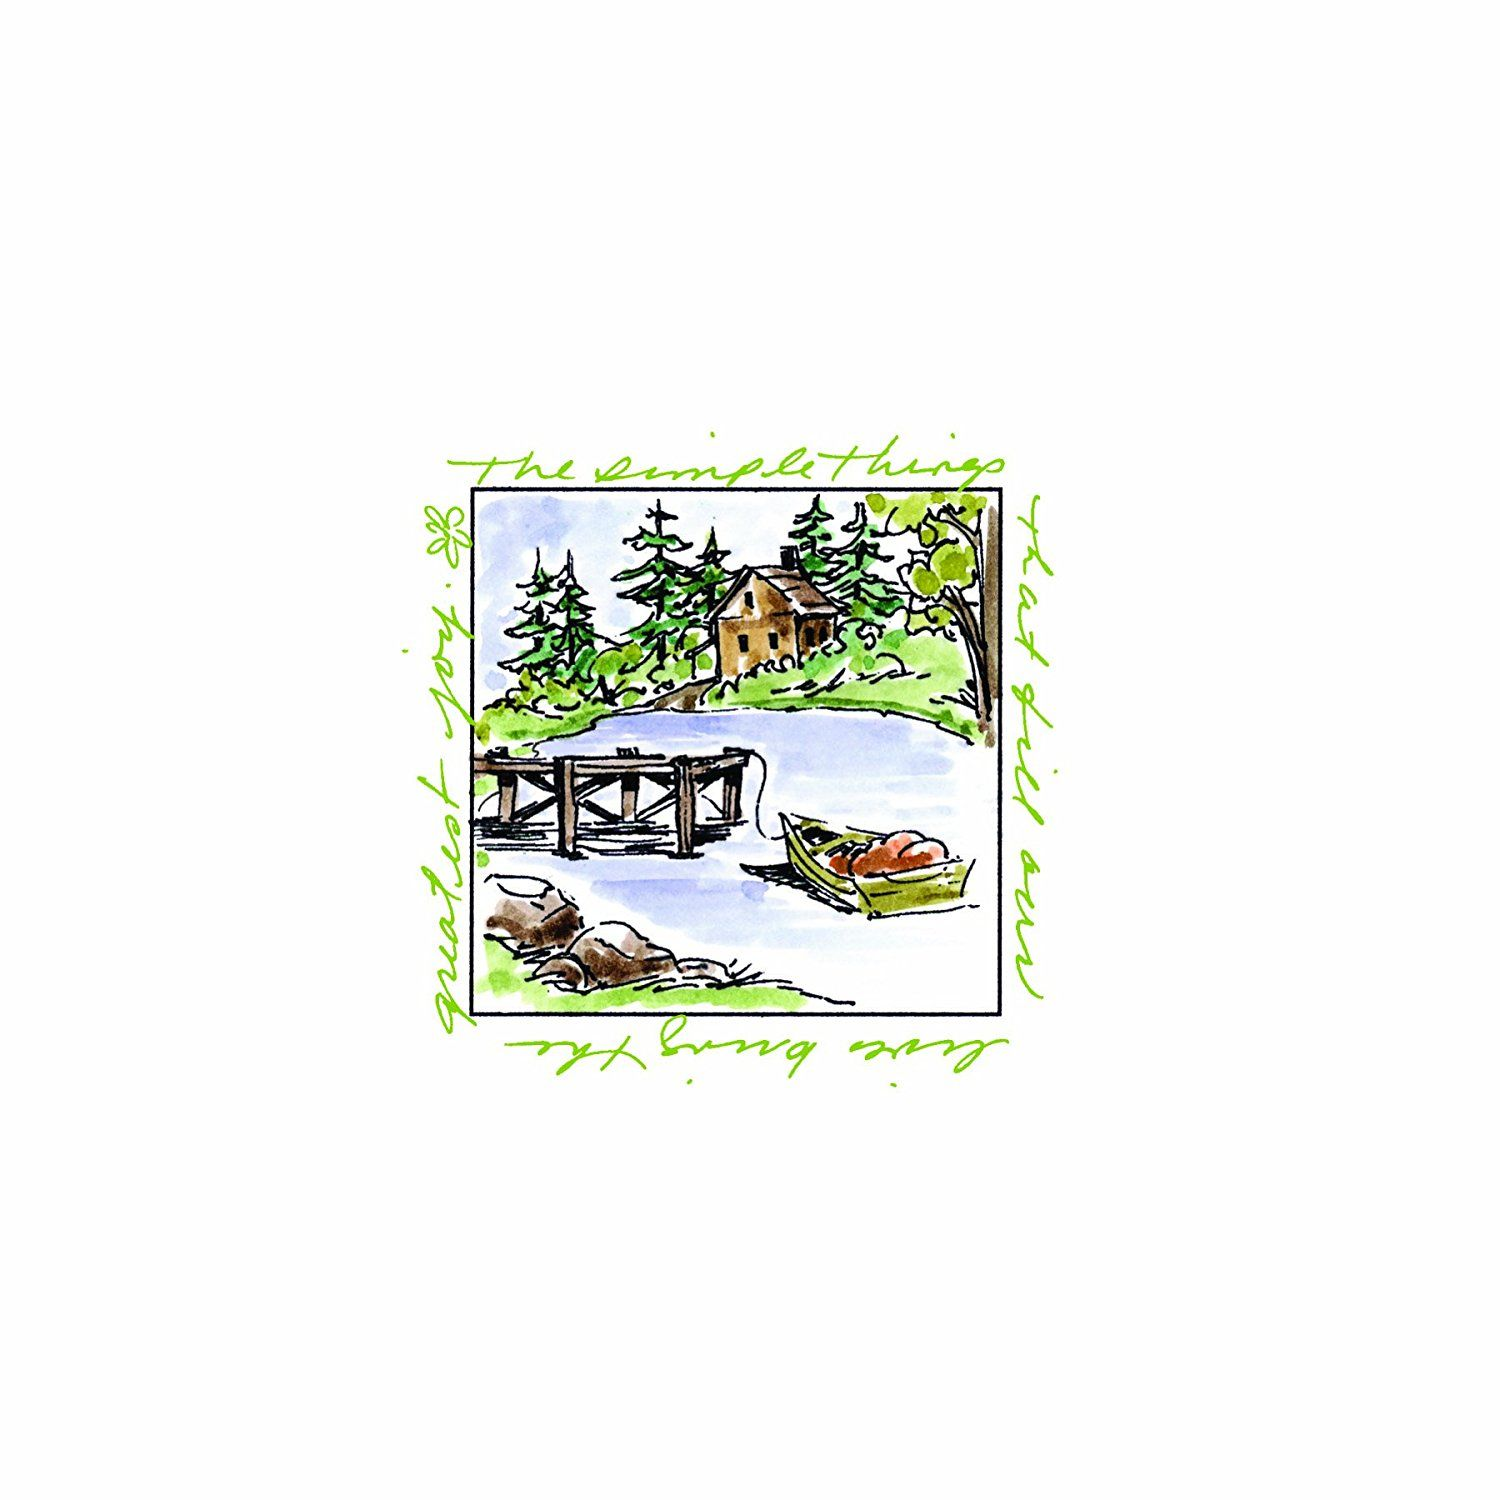 Rubber stamps arts and crafts - Amazon Com Art Impressions Lake House Window Rubber Stamp Arts Crafts